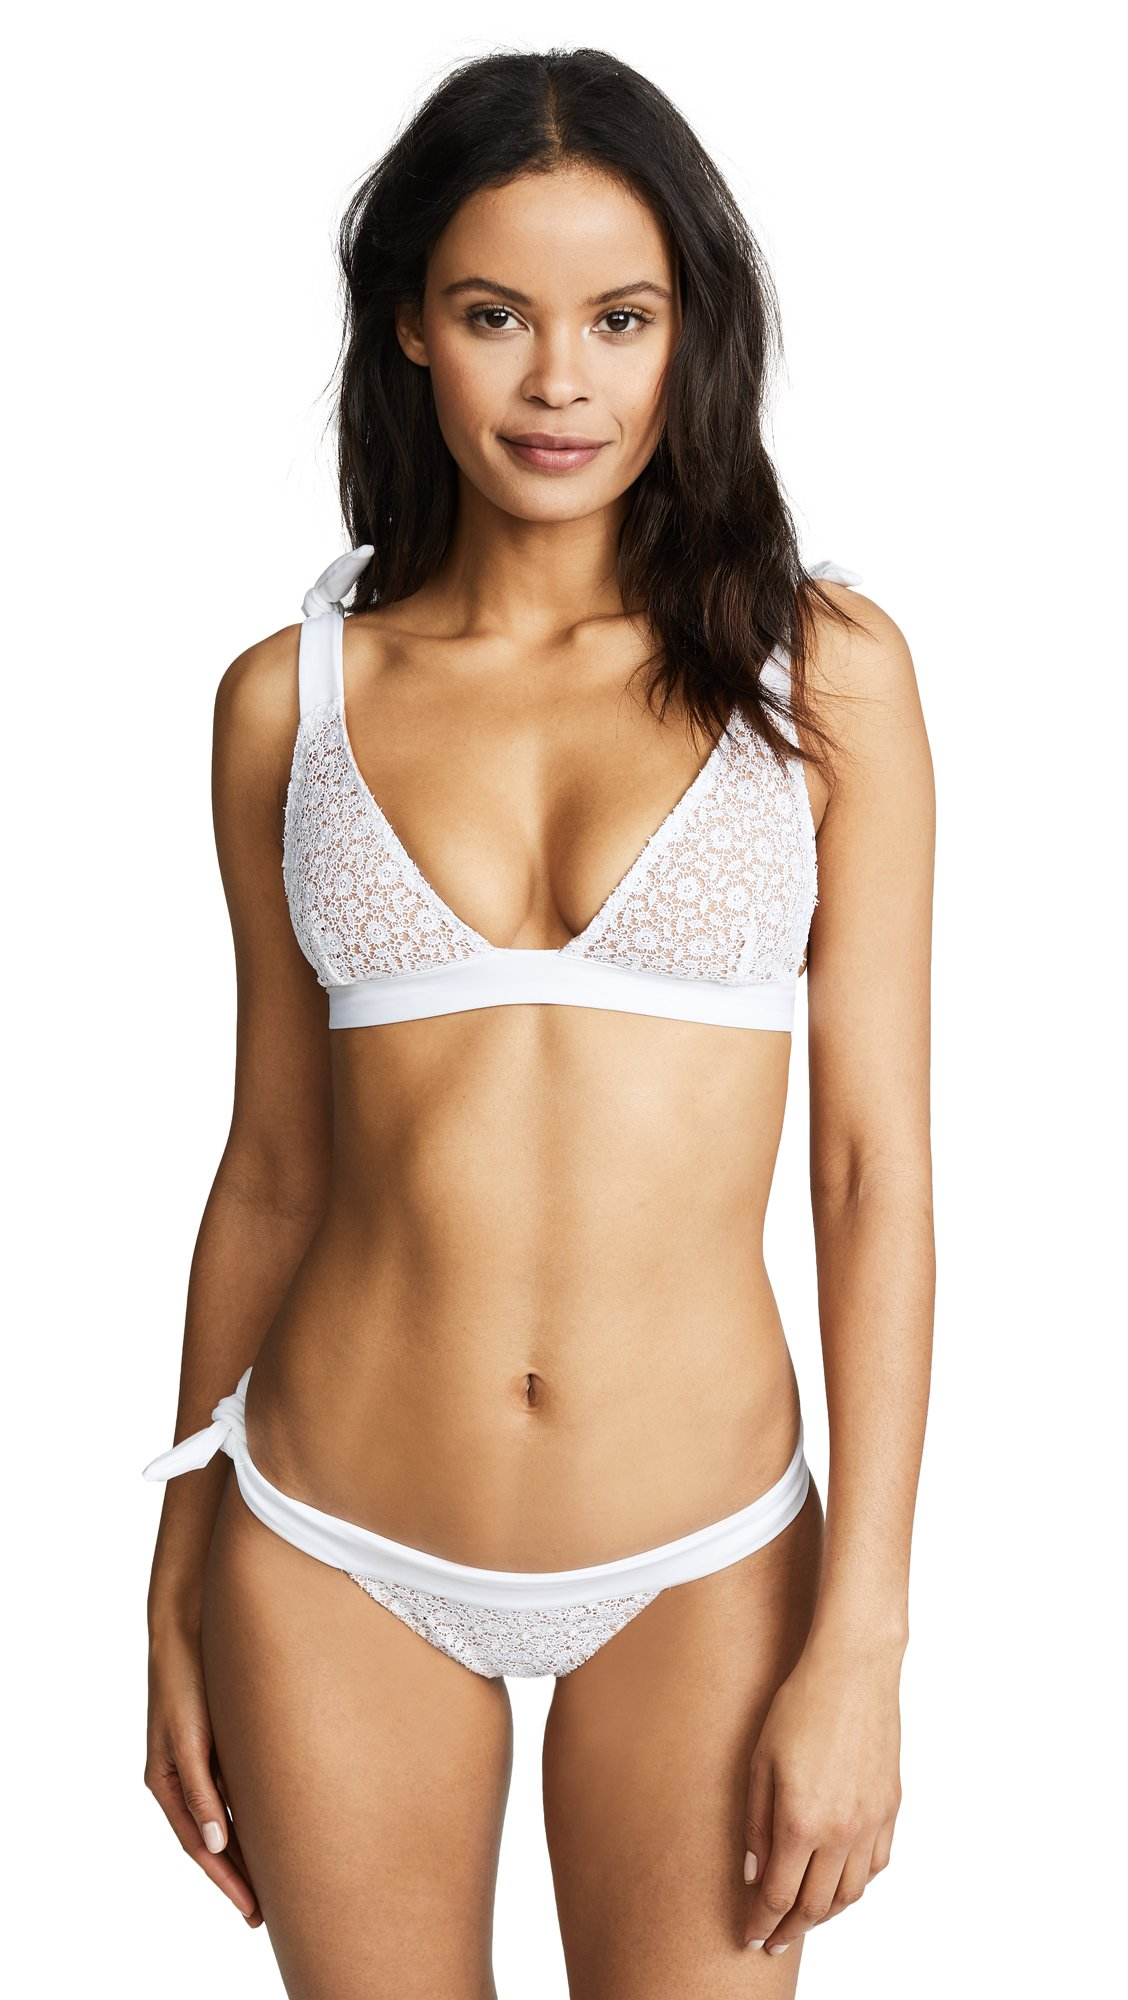 For Love & Lemons Women's Daquiri Lace Bikini Top, White Lace, X-Small by For Love & Lemons (Image #1)